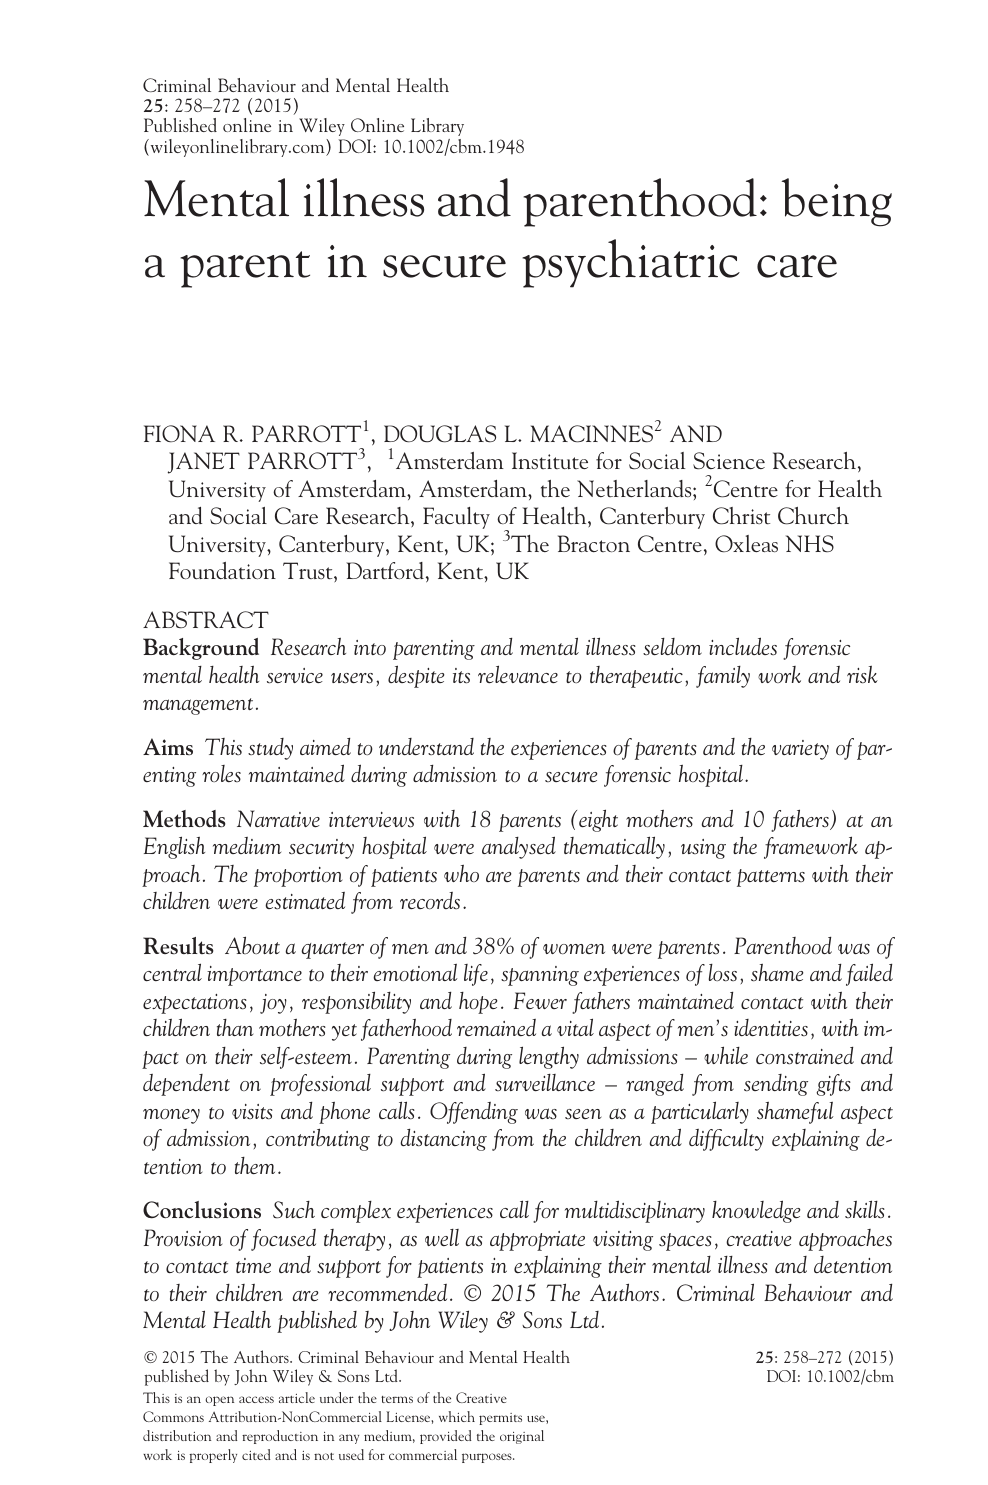 Mental illness and parenthood: being a parent in secure